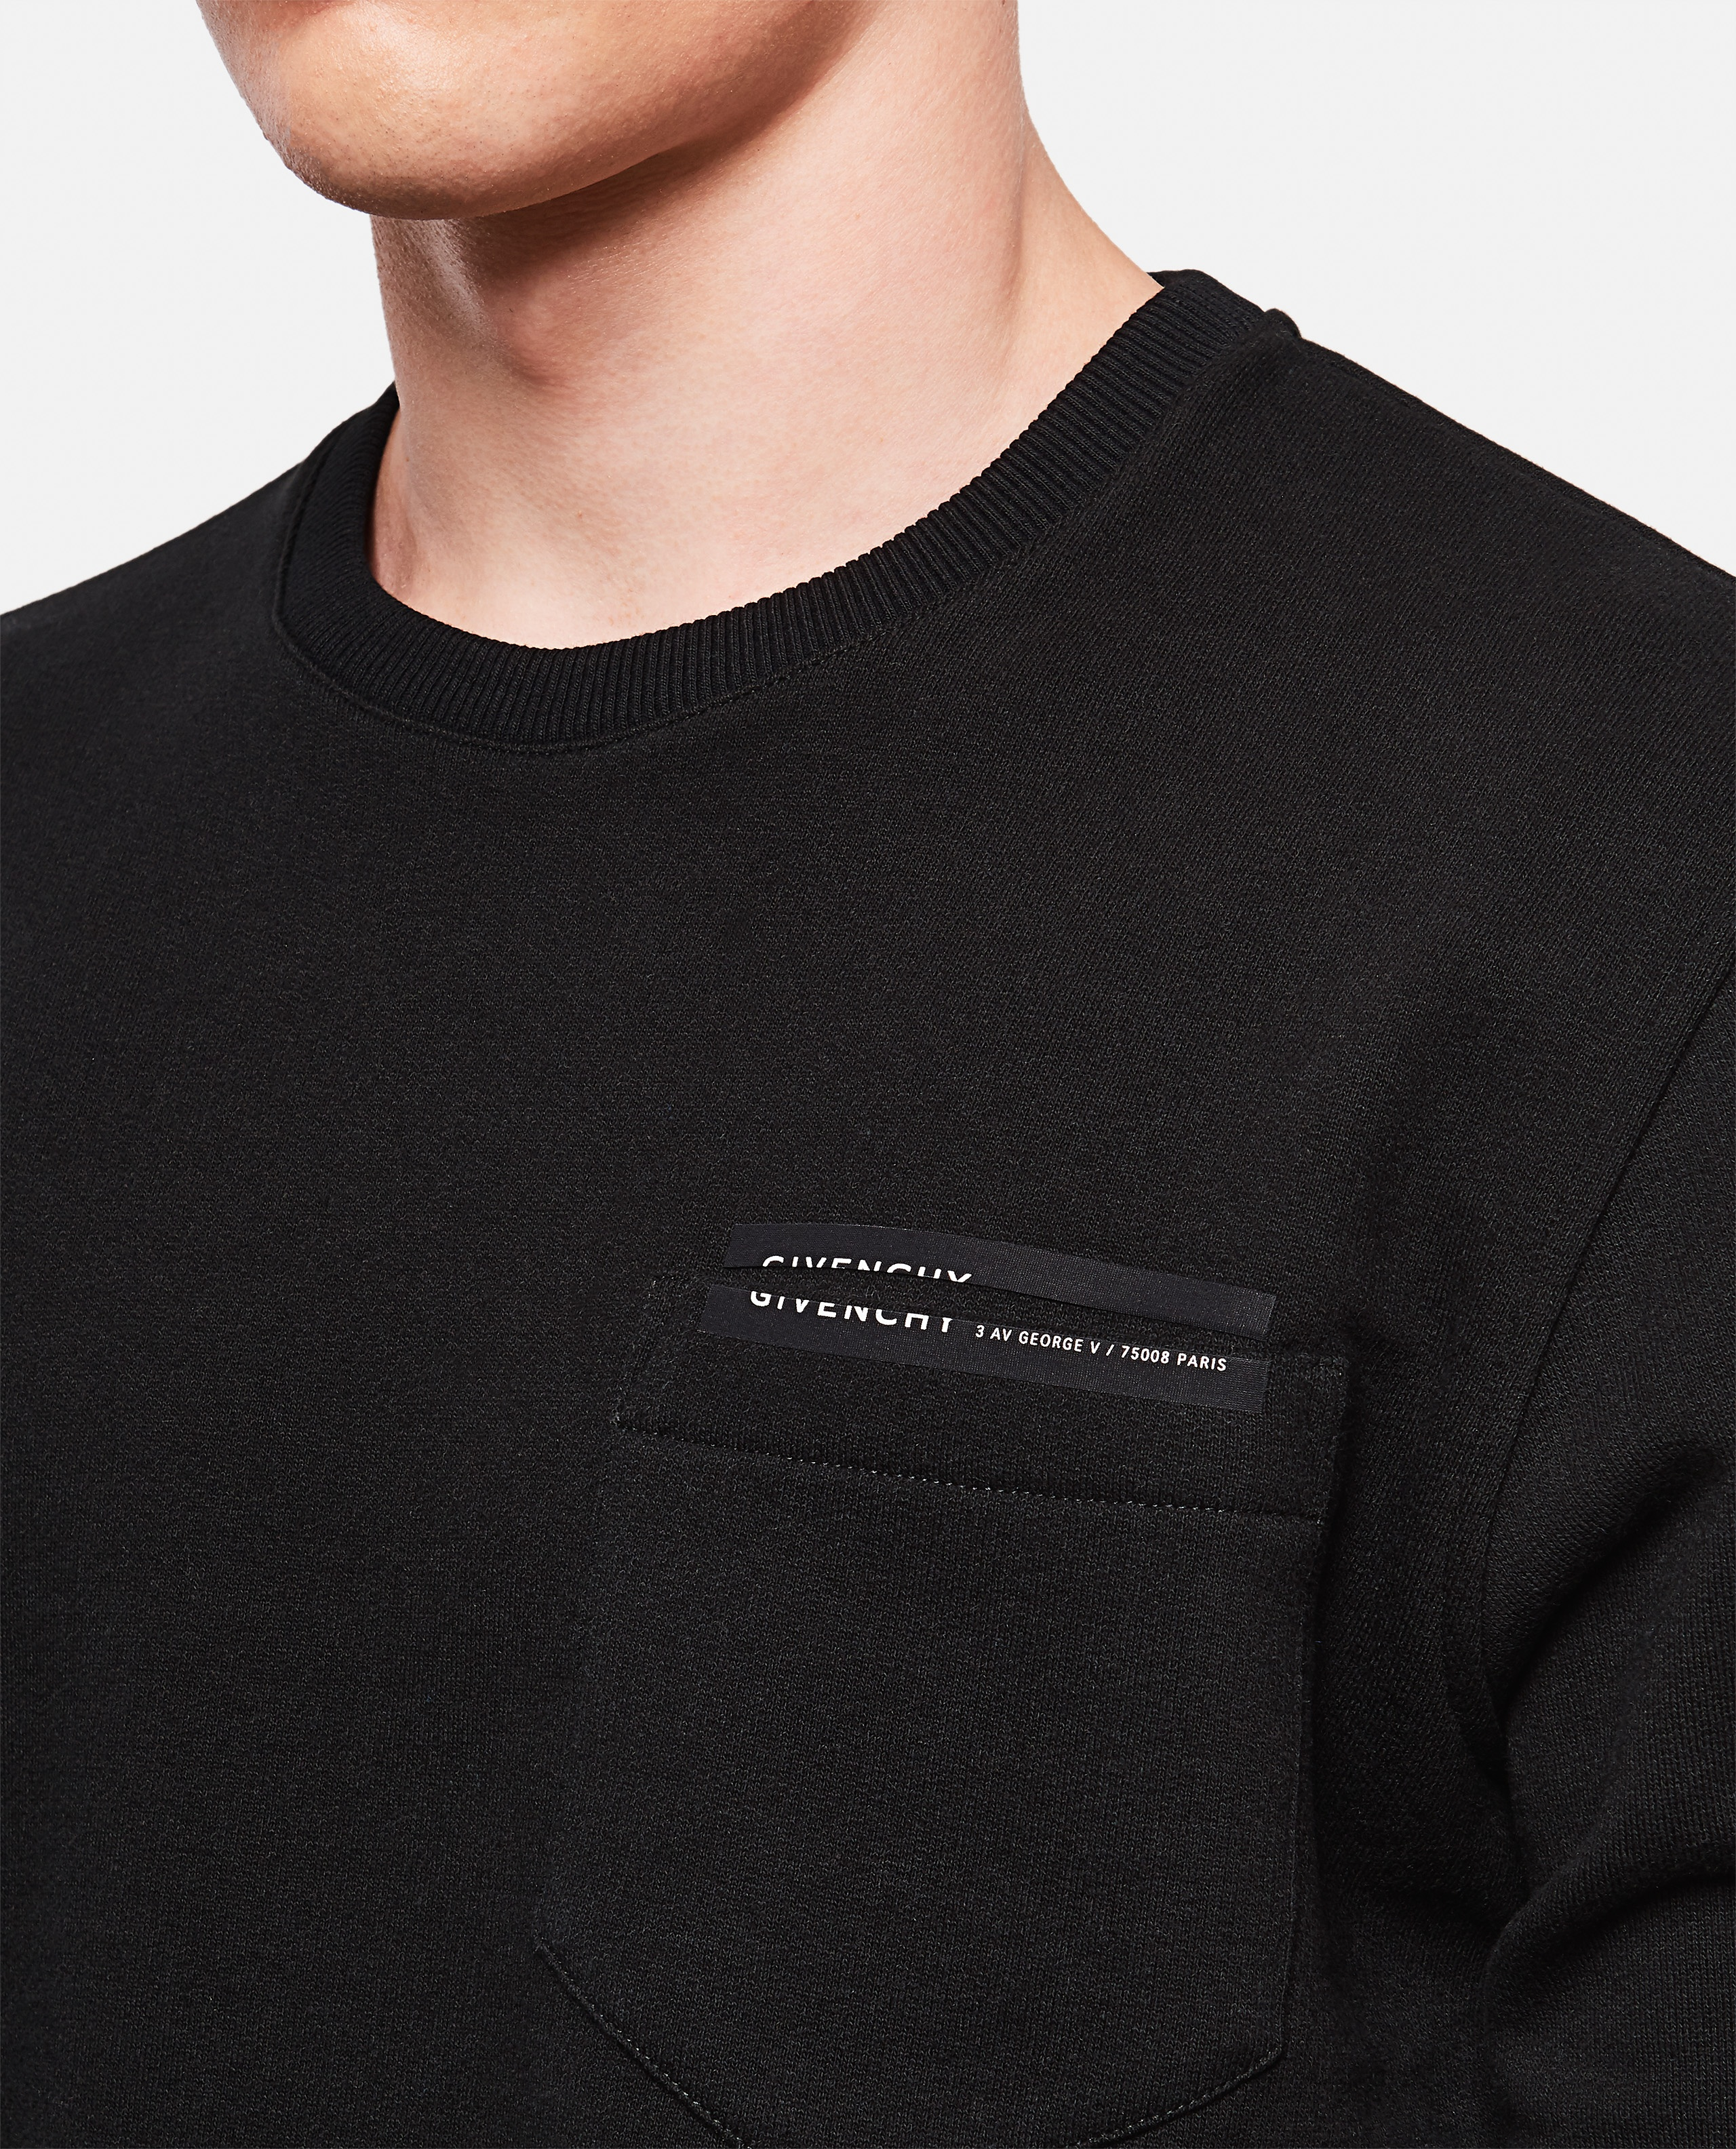 4G sweater Men Givenchy 000226470033486 4